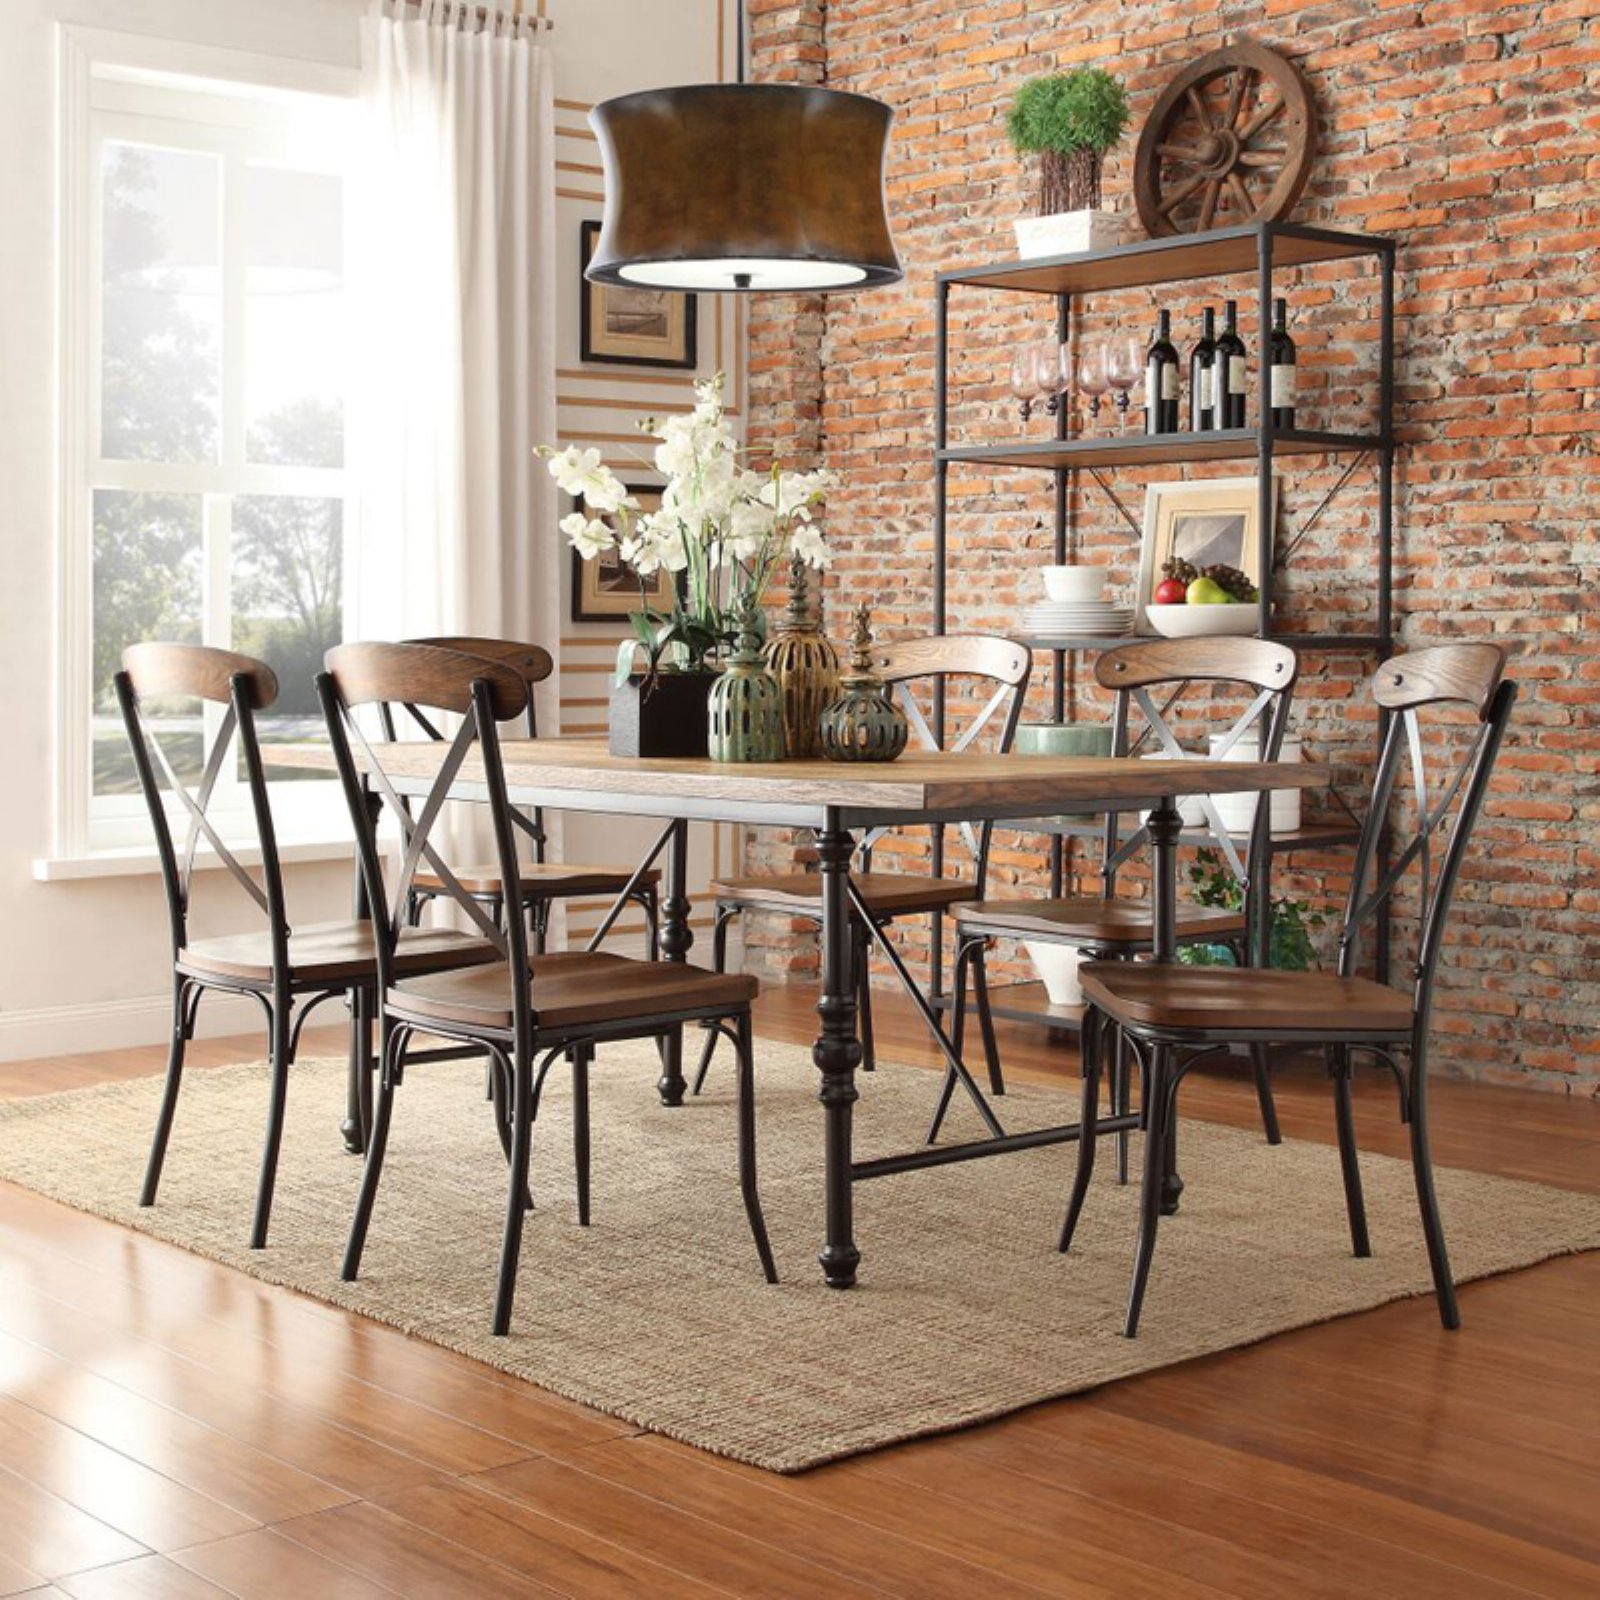 Weston Home 7 Piece Industrial Dining Set with X-Back Chairs